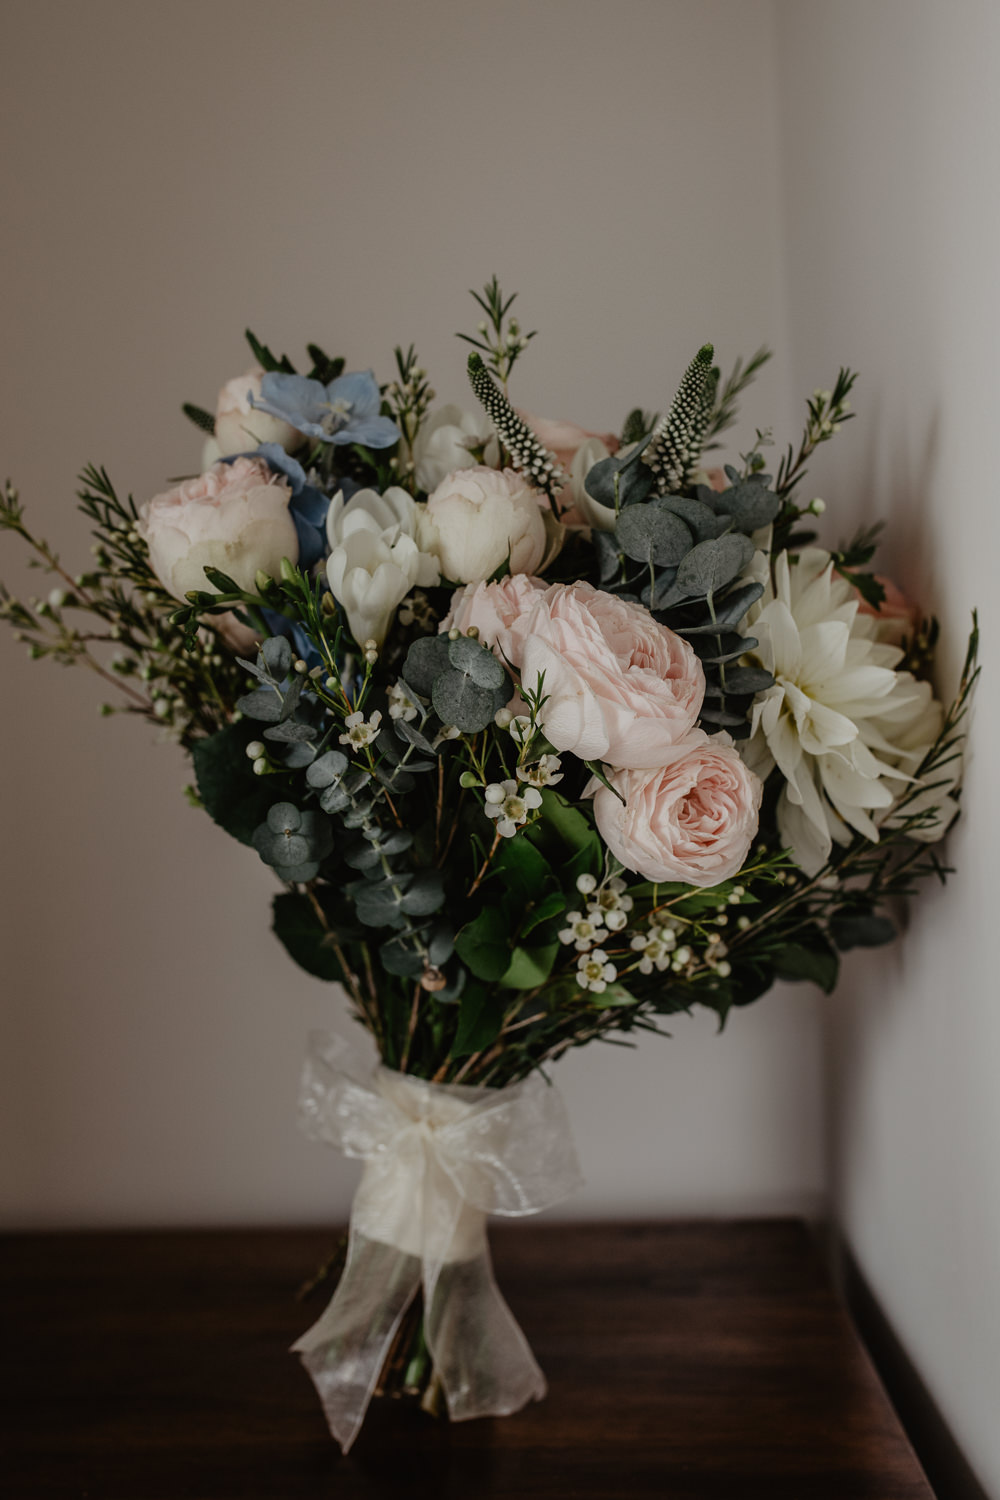 Osborne House Isle of Wight Natural Classic Bride Bouquet Pastel Pink Blue White Eucalyptus | Timeless Royal Inspired Seaside Wedding Holly Cade Photography